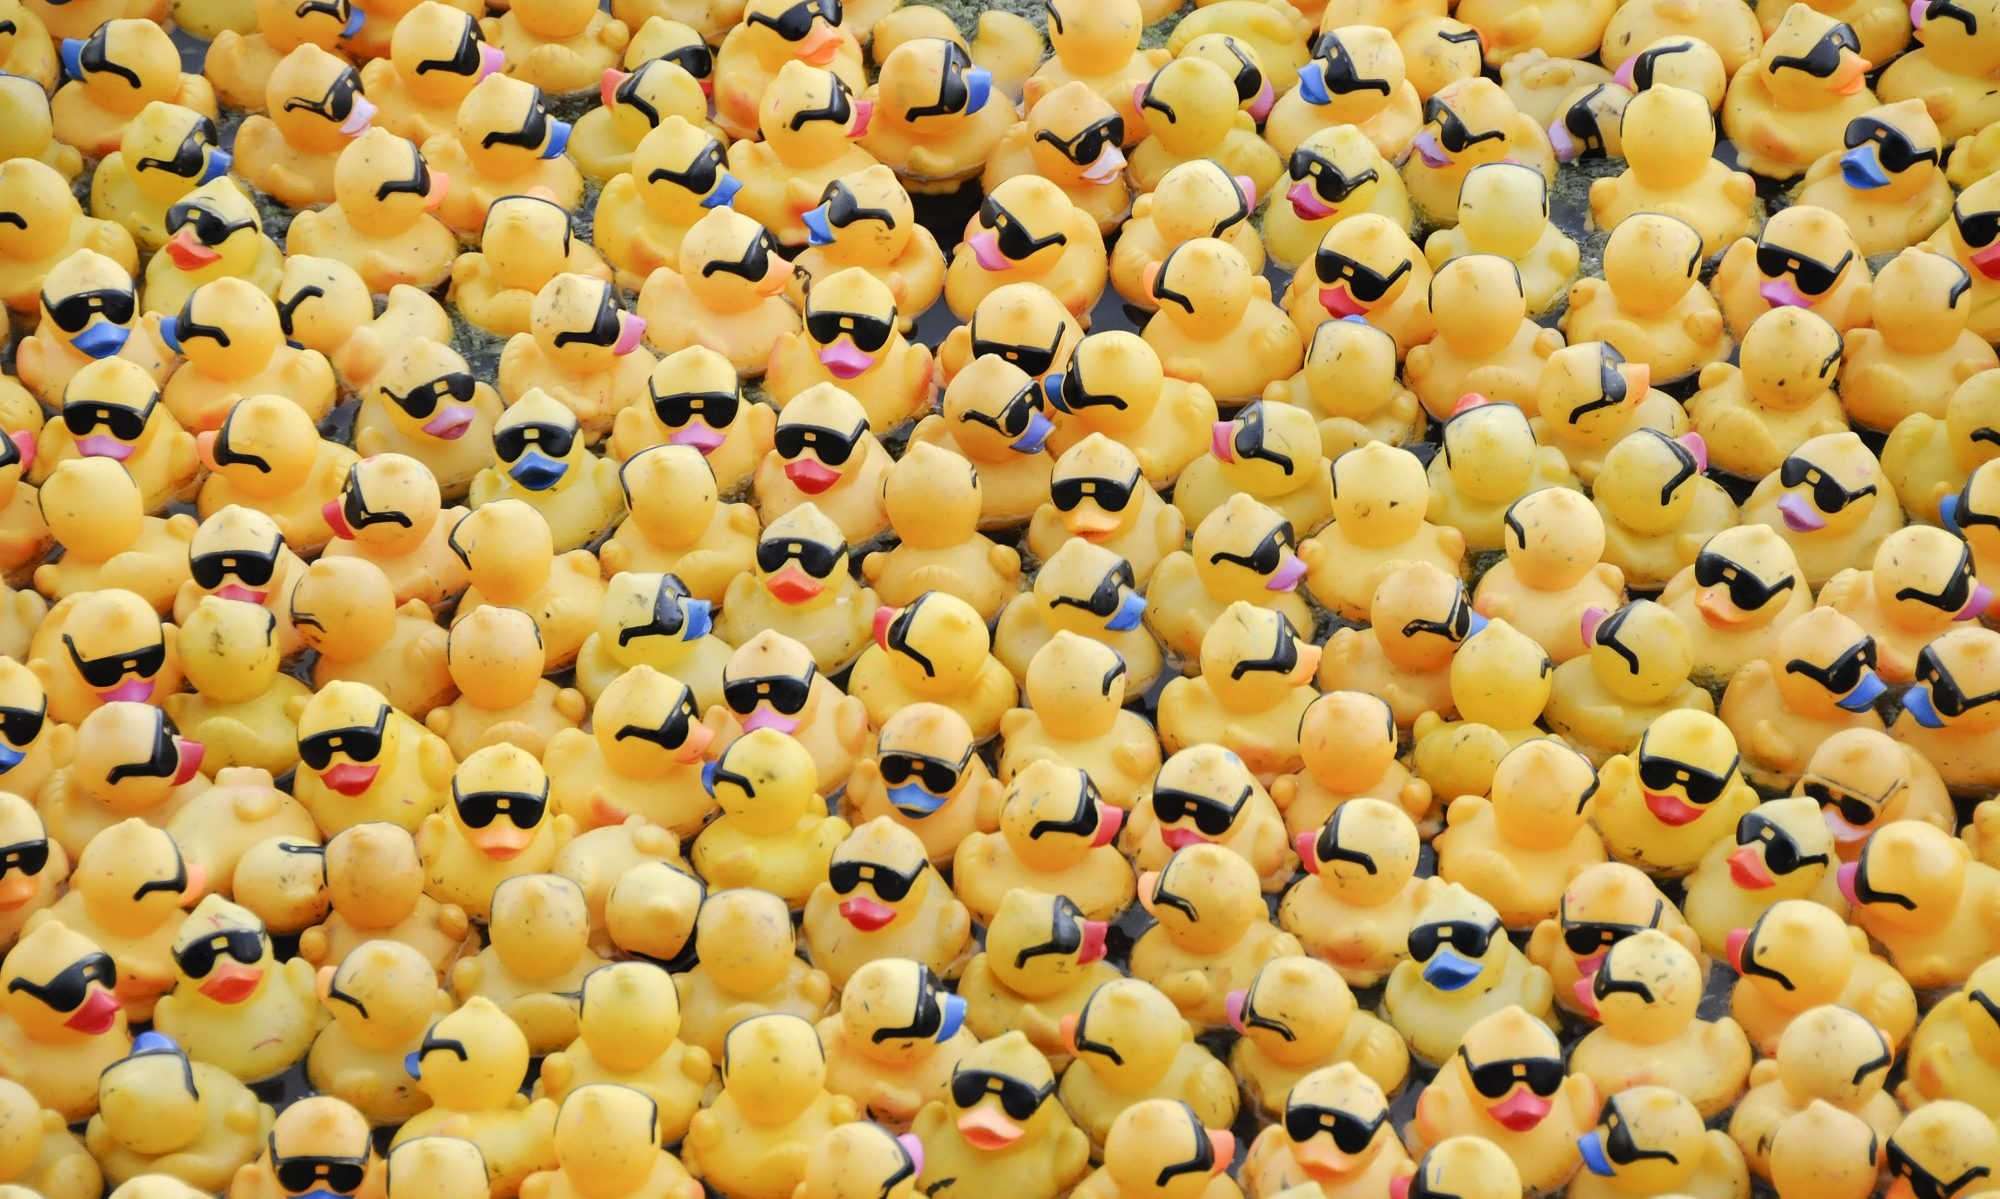 Wholesale Rubber Ducks